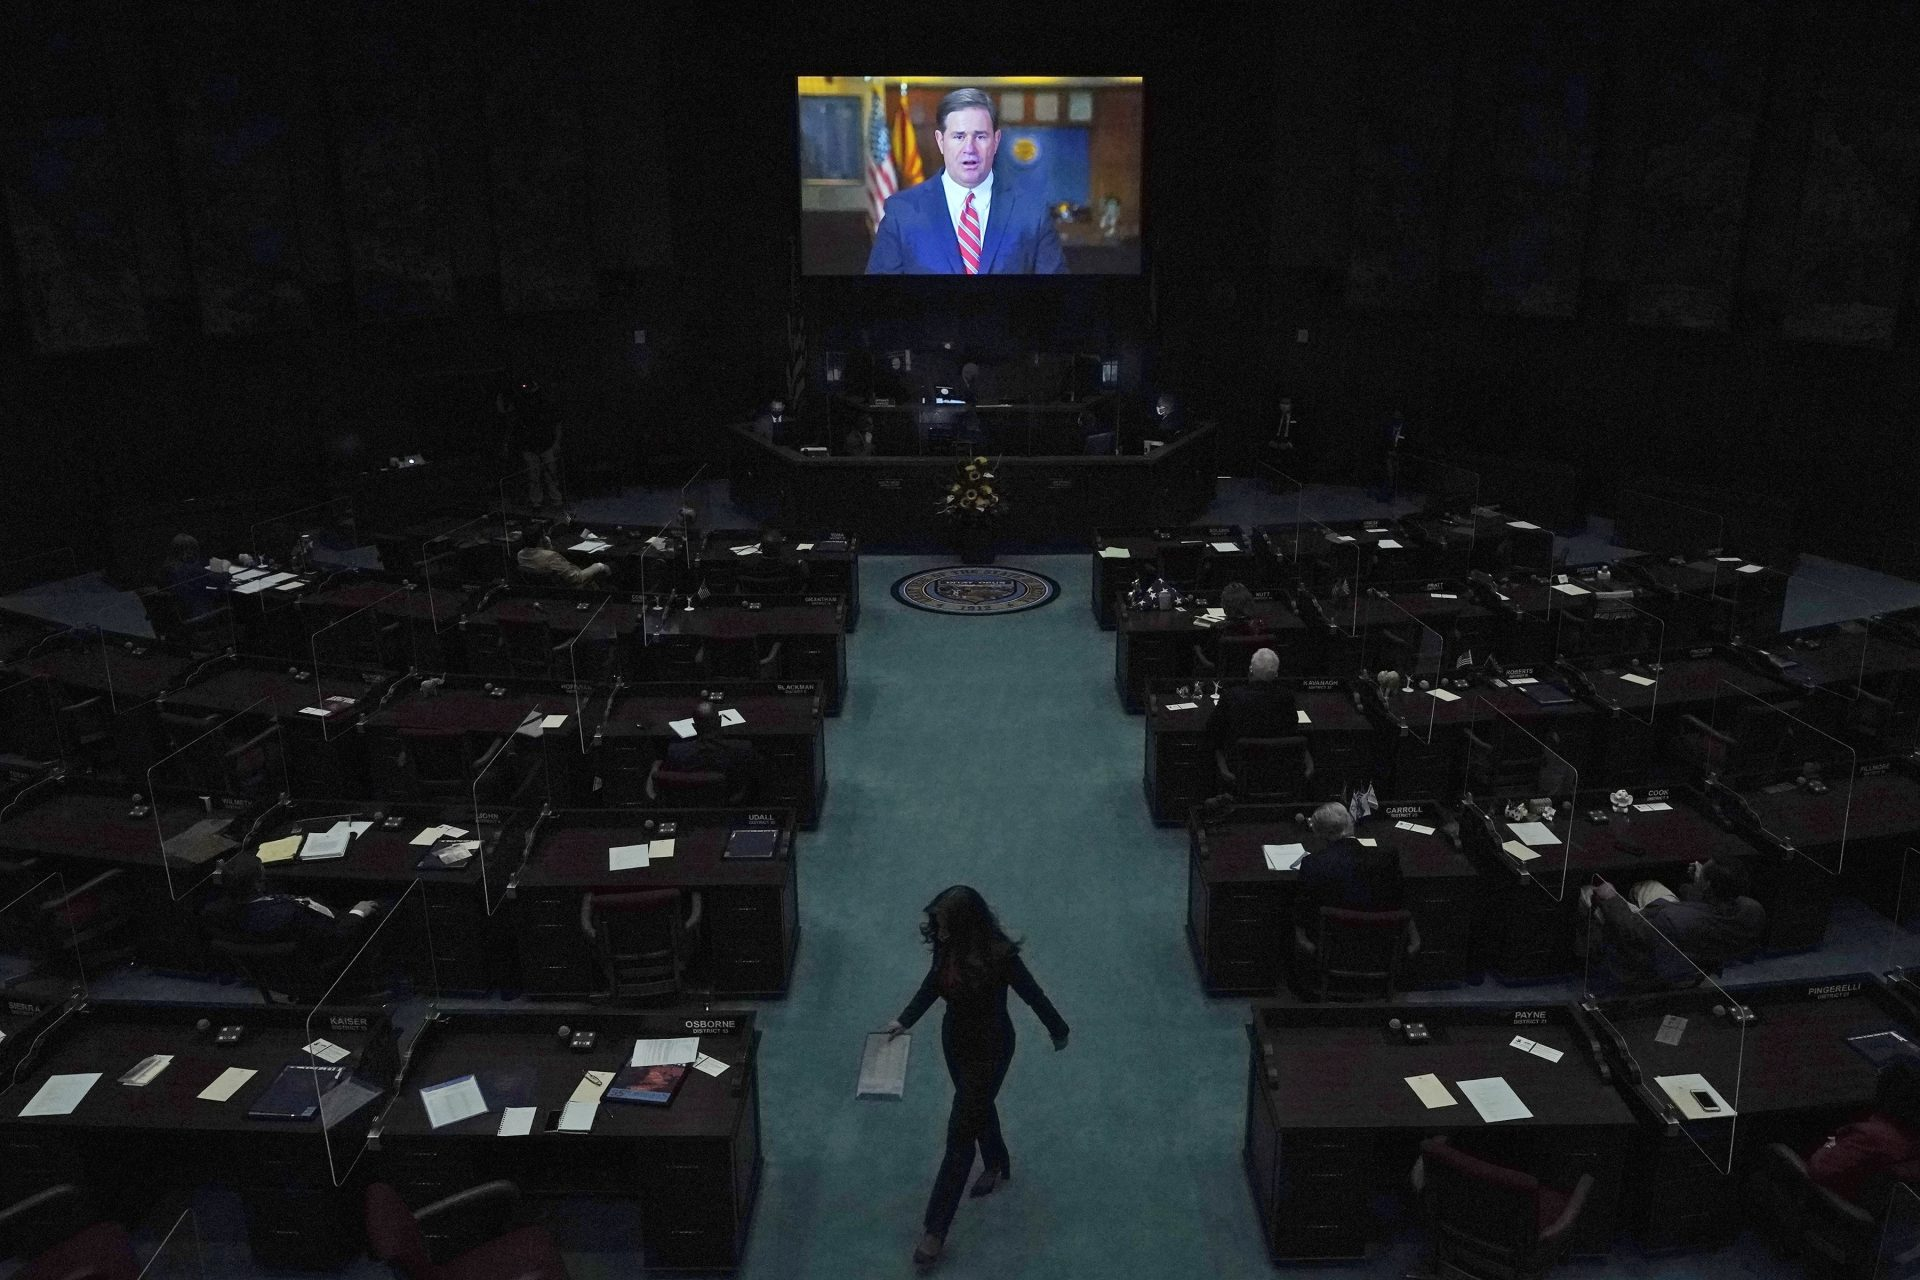 In this Jan. 11, 2021, file photo, Republican Gov. Doug Ducey delivers a remote state of the state address during the opening of the Arizona Legislature at the state Capitol in Phoenix. Irked by the sweeping use of executive orders during the COVID-19 crisis, state lawmakers around the U.S. are moving to curb the authority of governors and top health officials to impose emergency restrictions such as mask rules and business shutdowns. Republicans in the Arizona Senate want to end the broad emergency powers that Ducey has used to limit large gatherings and business capacities.